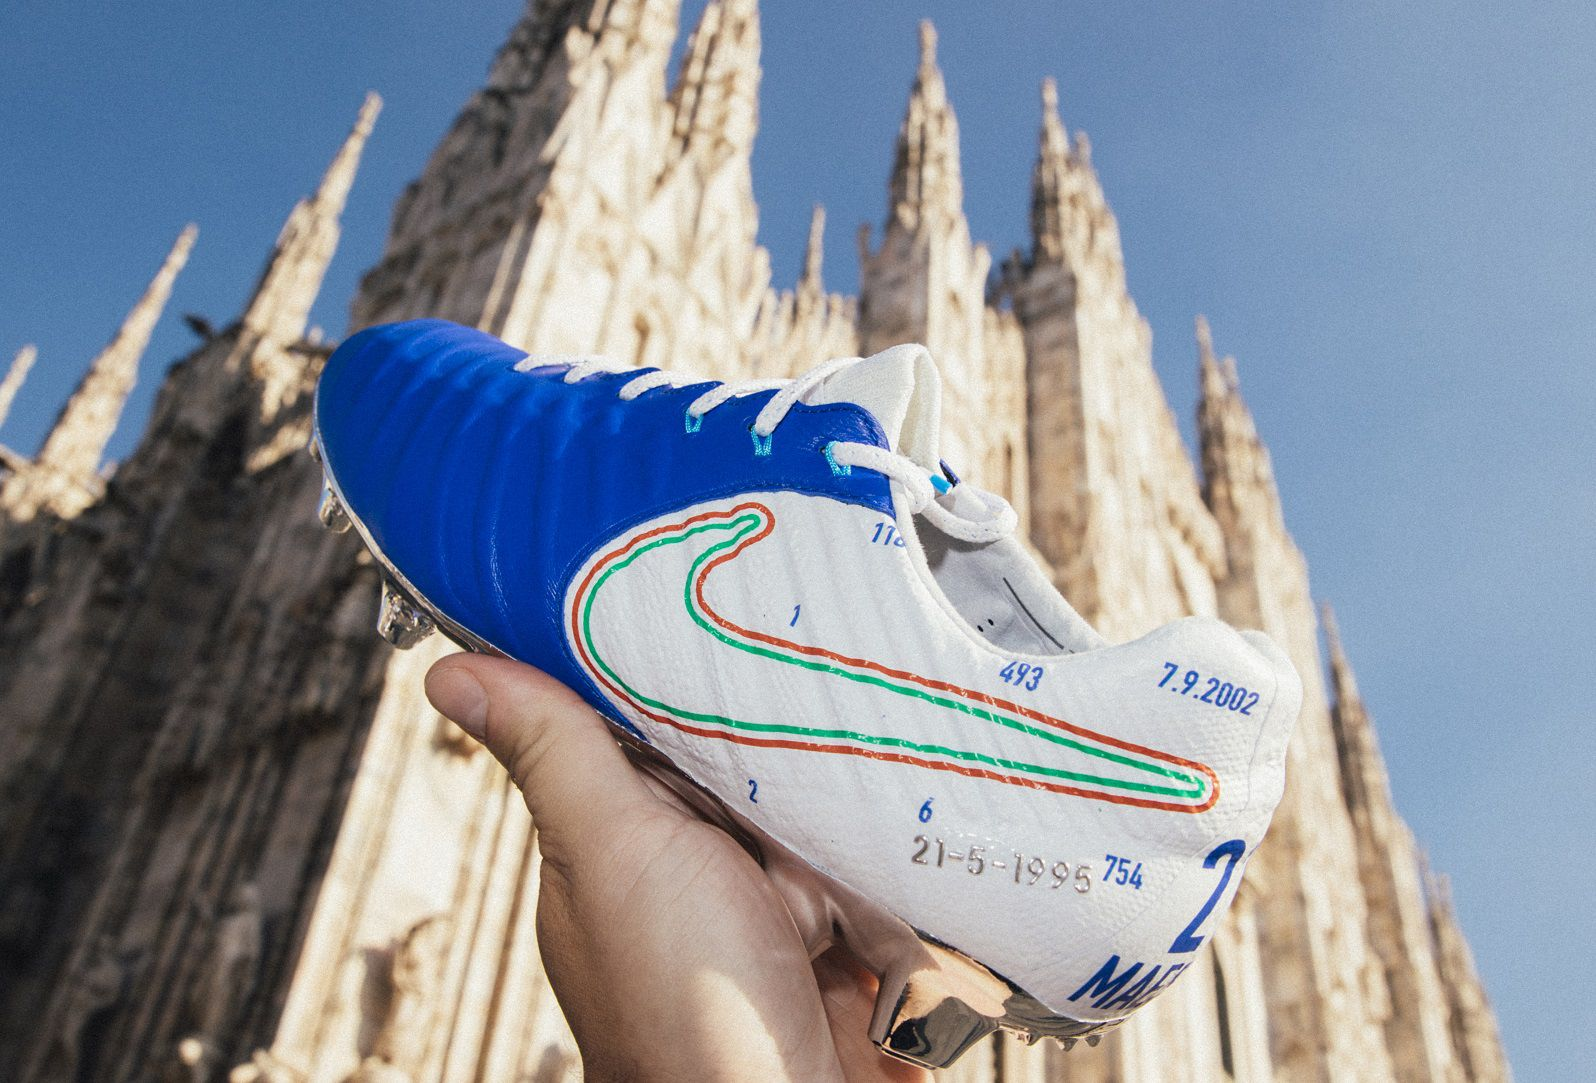 reputable site 18103 84b89 Special Nike Tiempo Legend Andrea Pirlo Boots Revealed ...